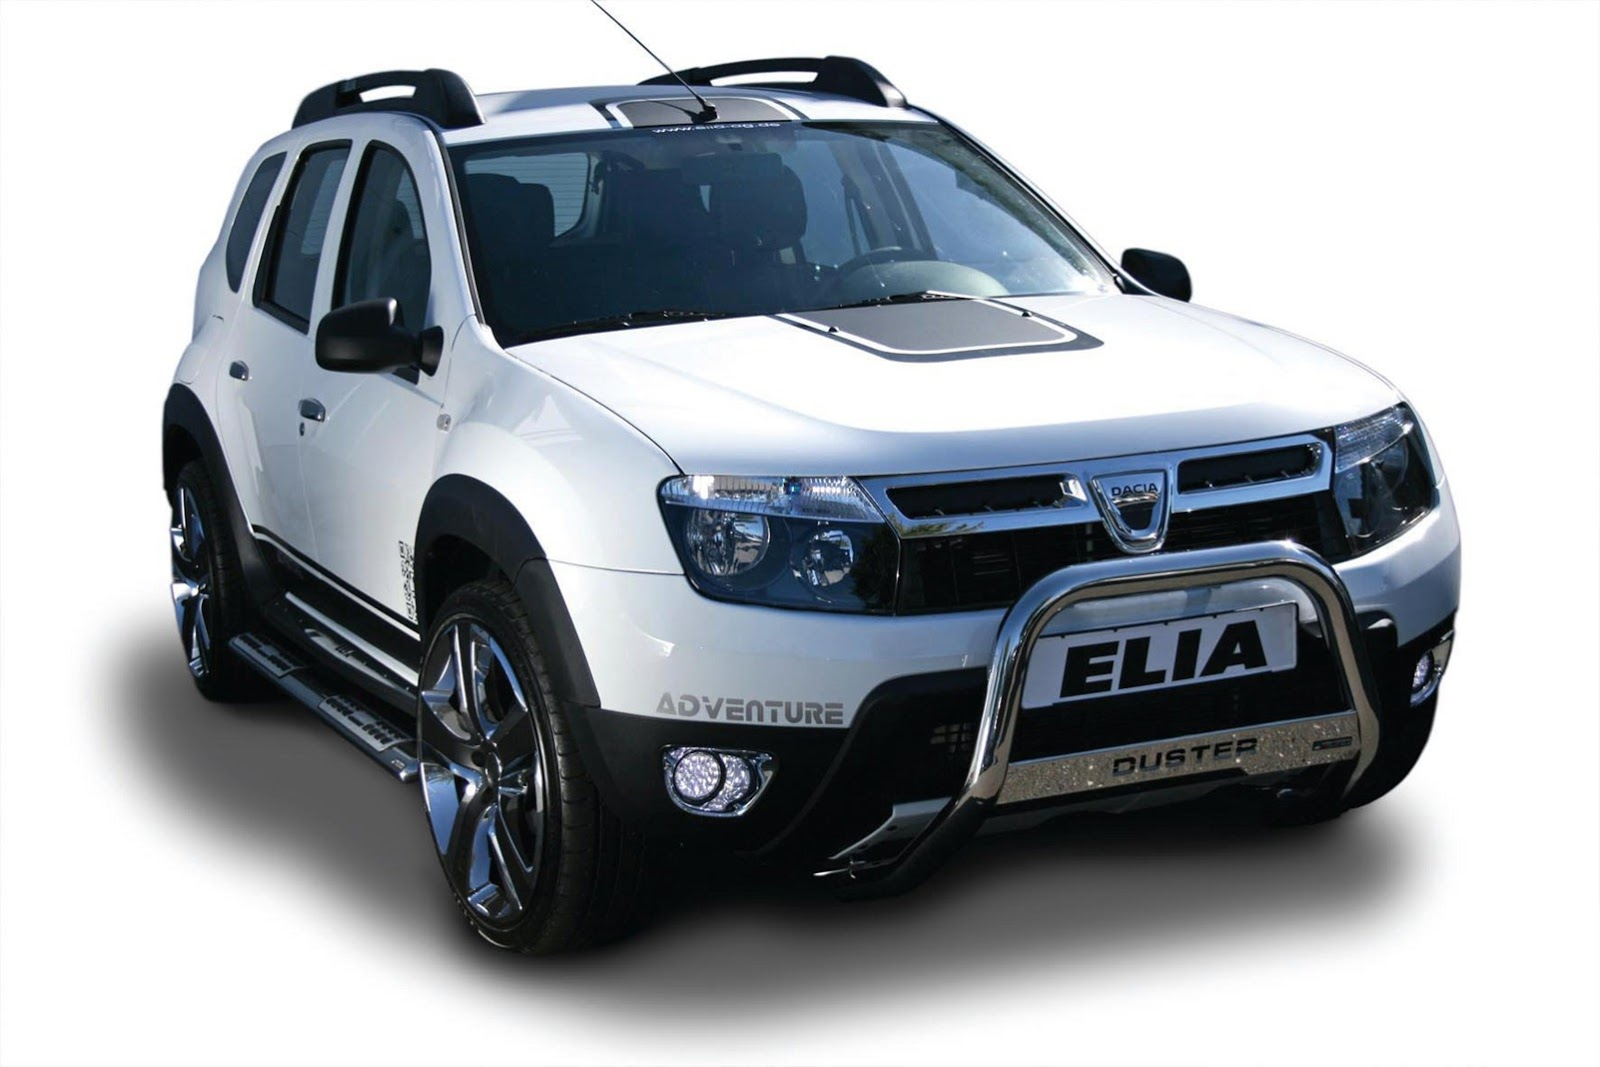 Dacia Duster Gets Stormtrooper Makeover from Tuner Elia ...